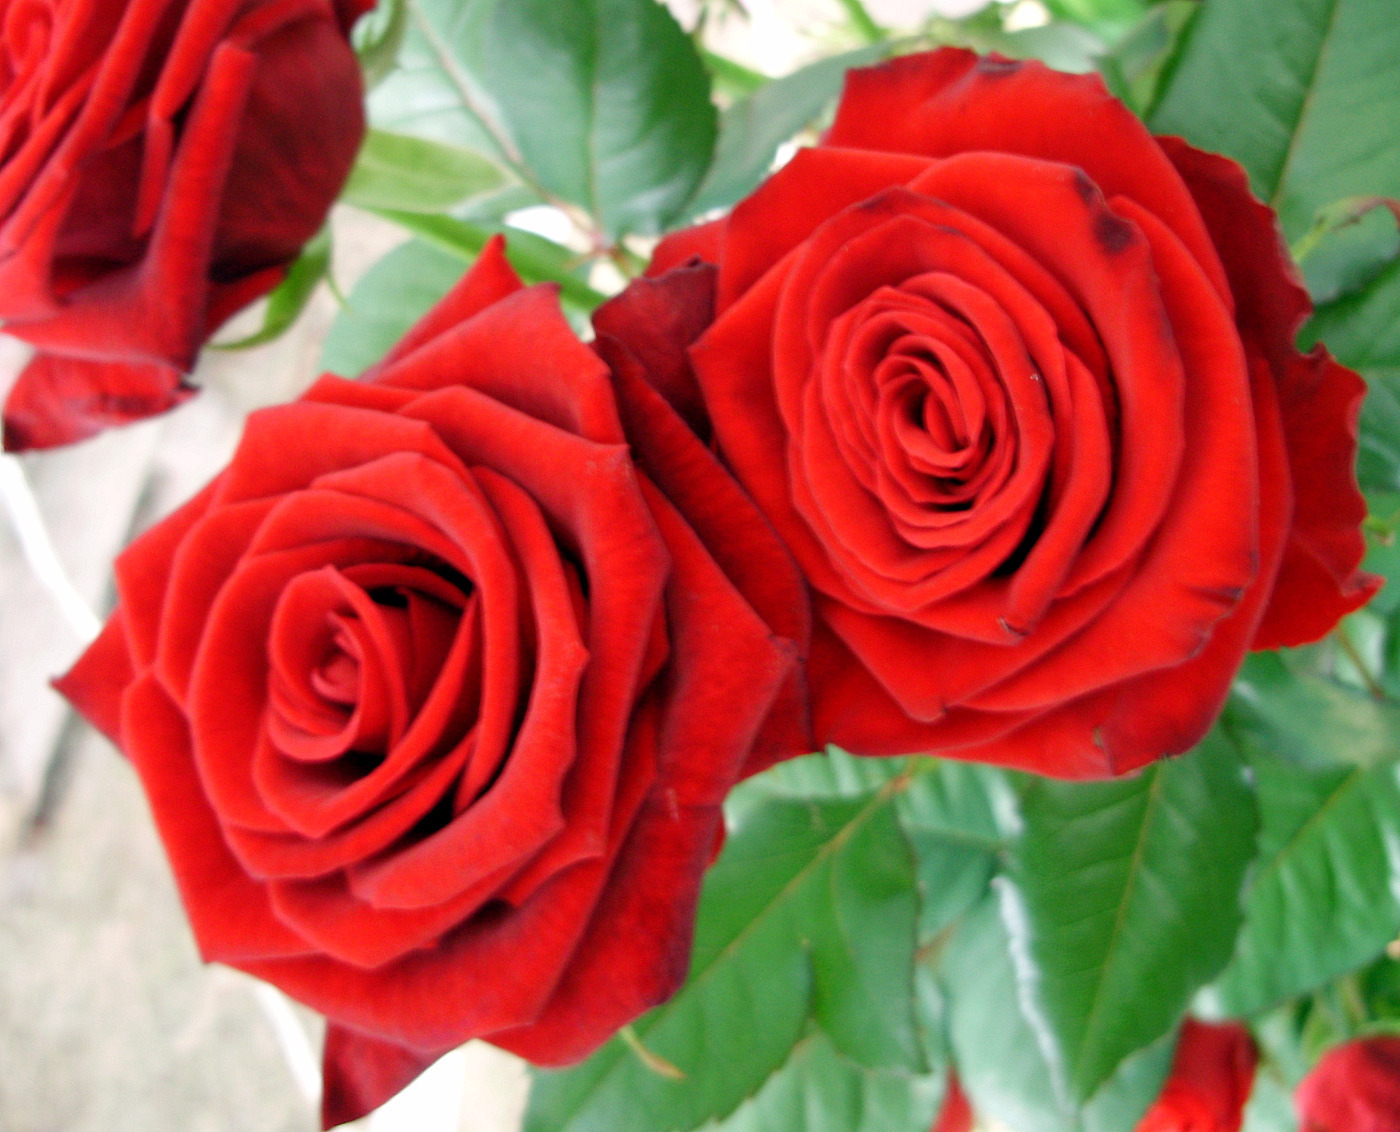 roses - photo #7